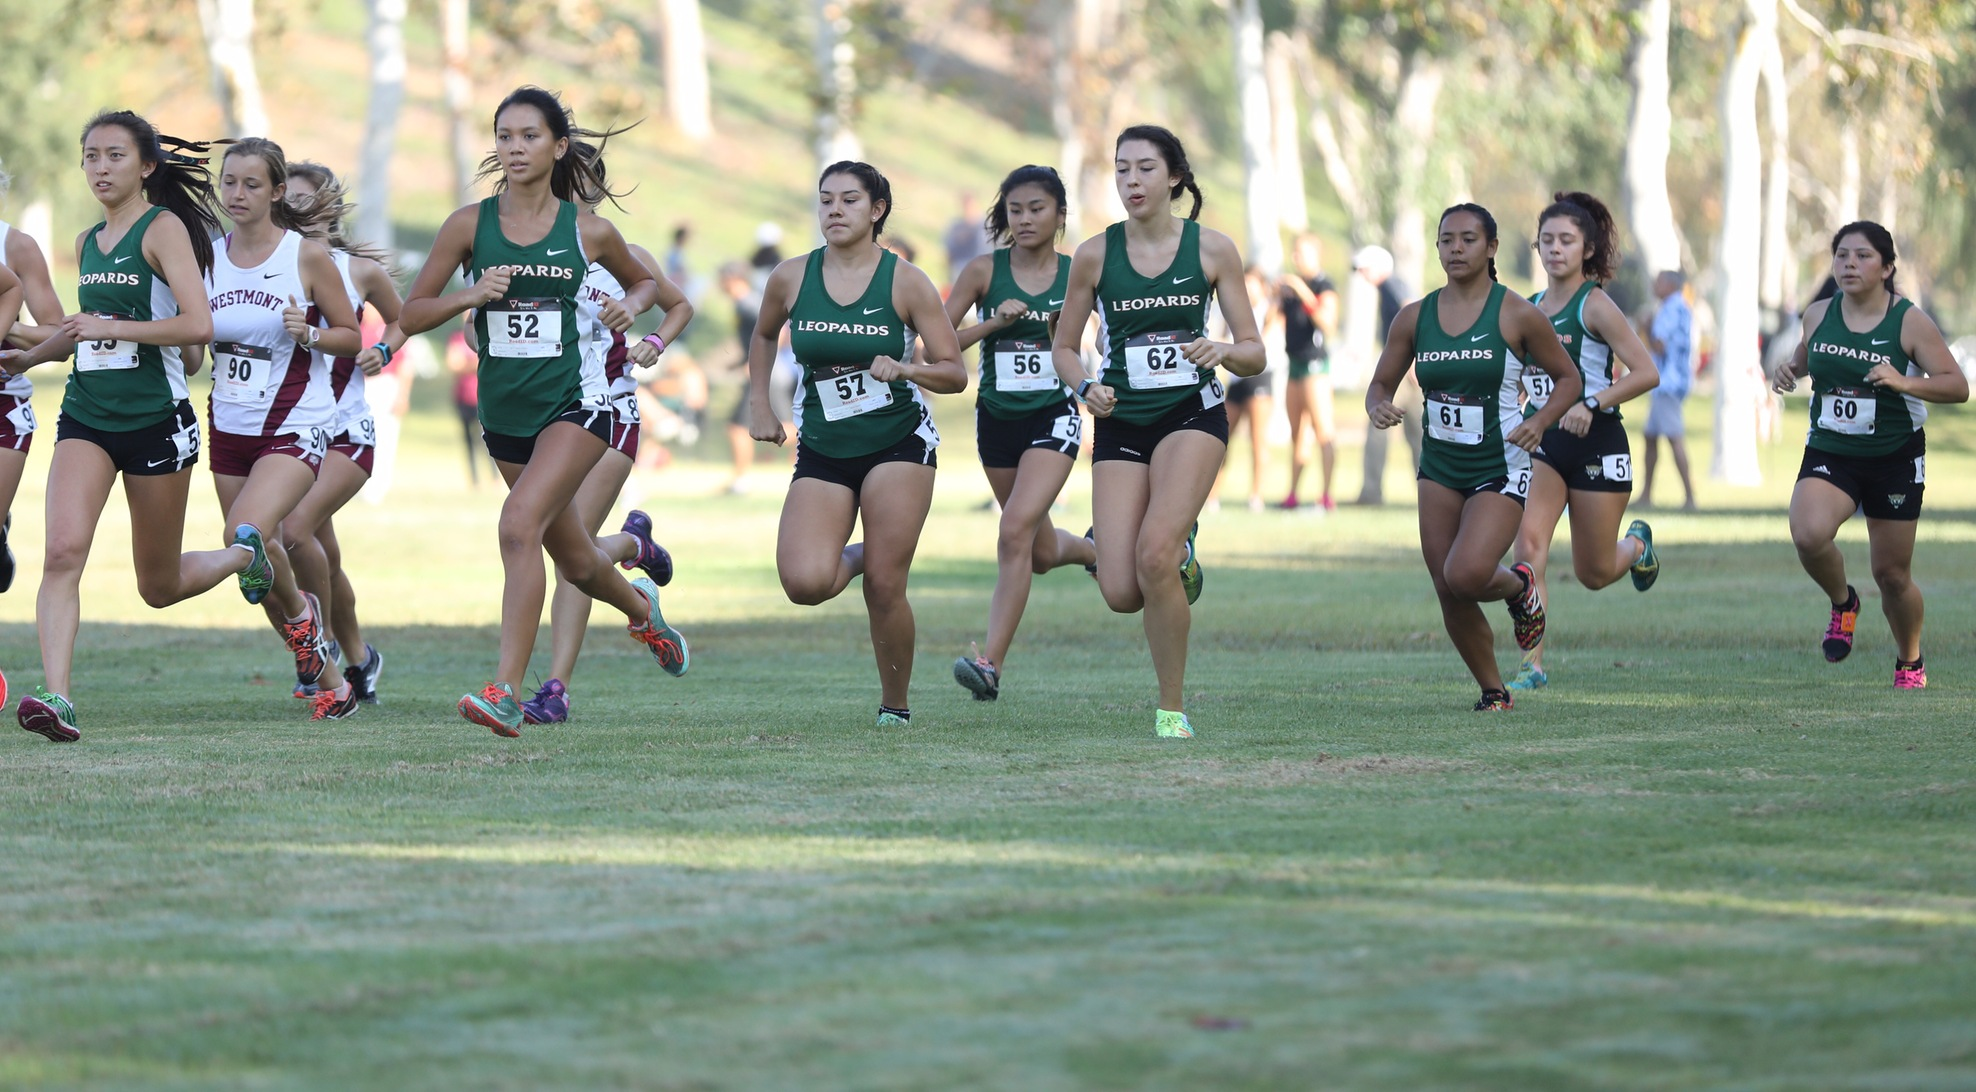 Dela Cruz paces Leopars at Biola Invite